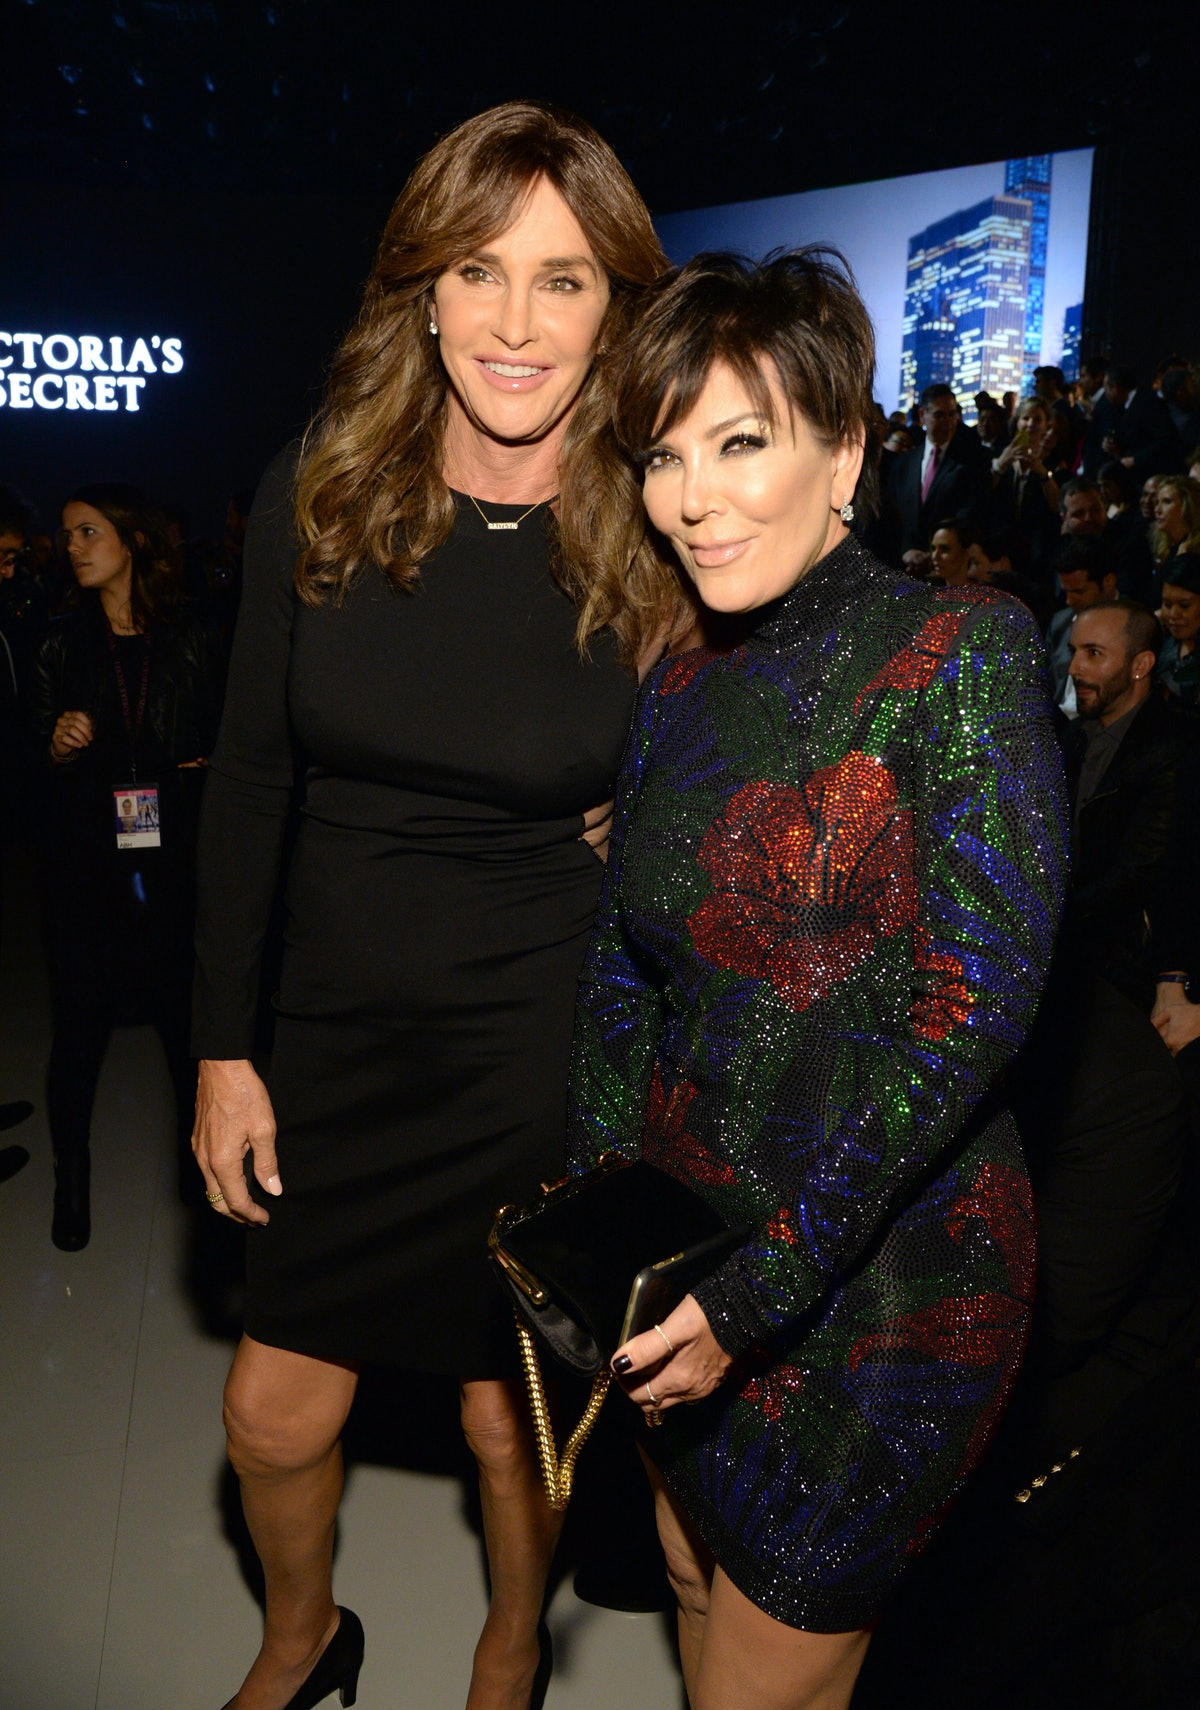 Caitlyn Jenner and Kris Jenner attend the Victoria's Secret Fashion Show.